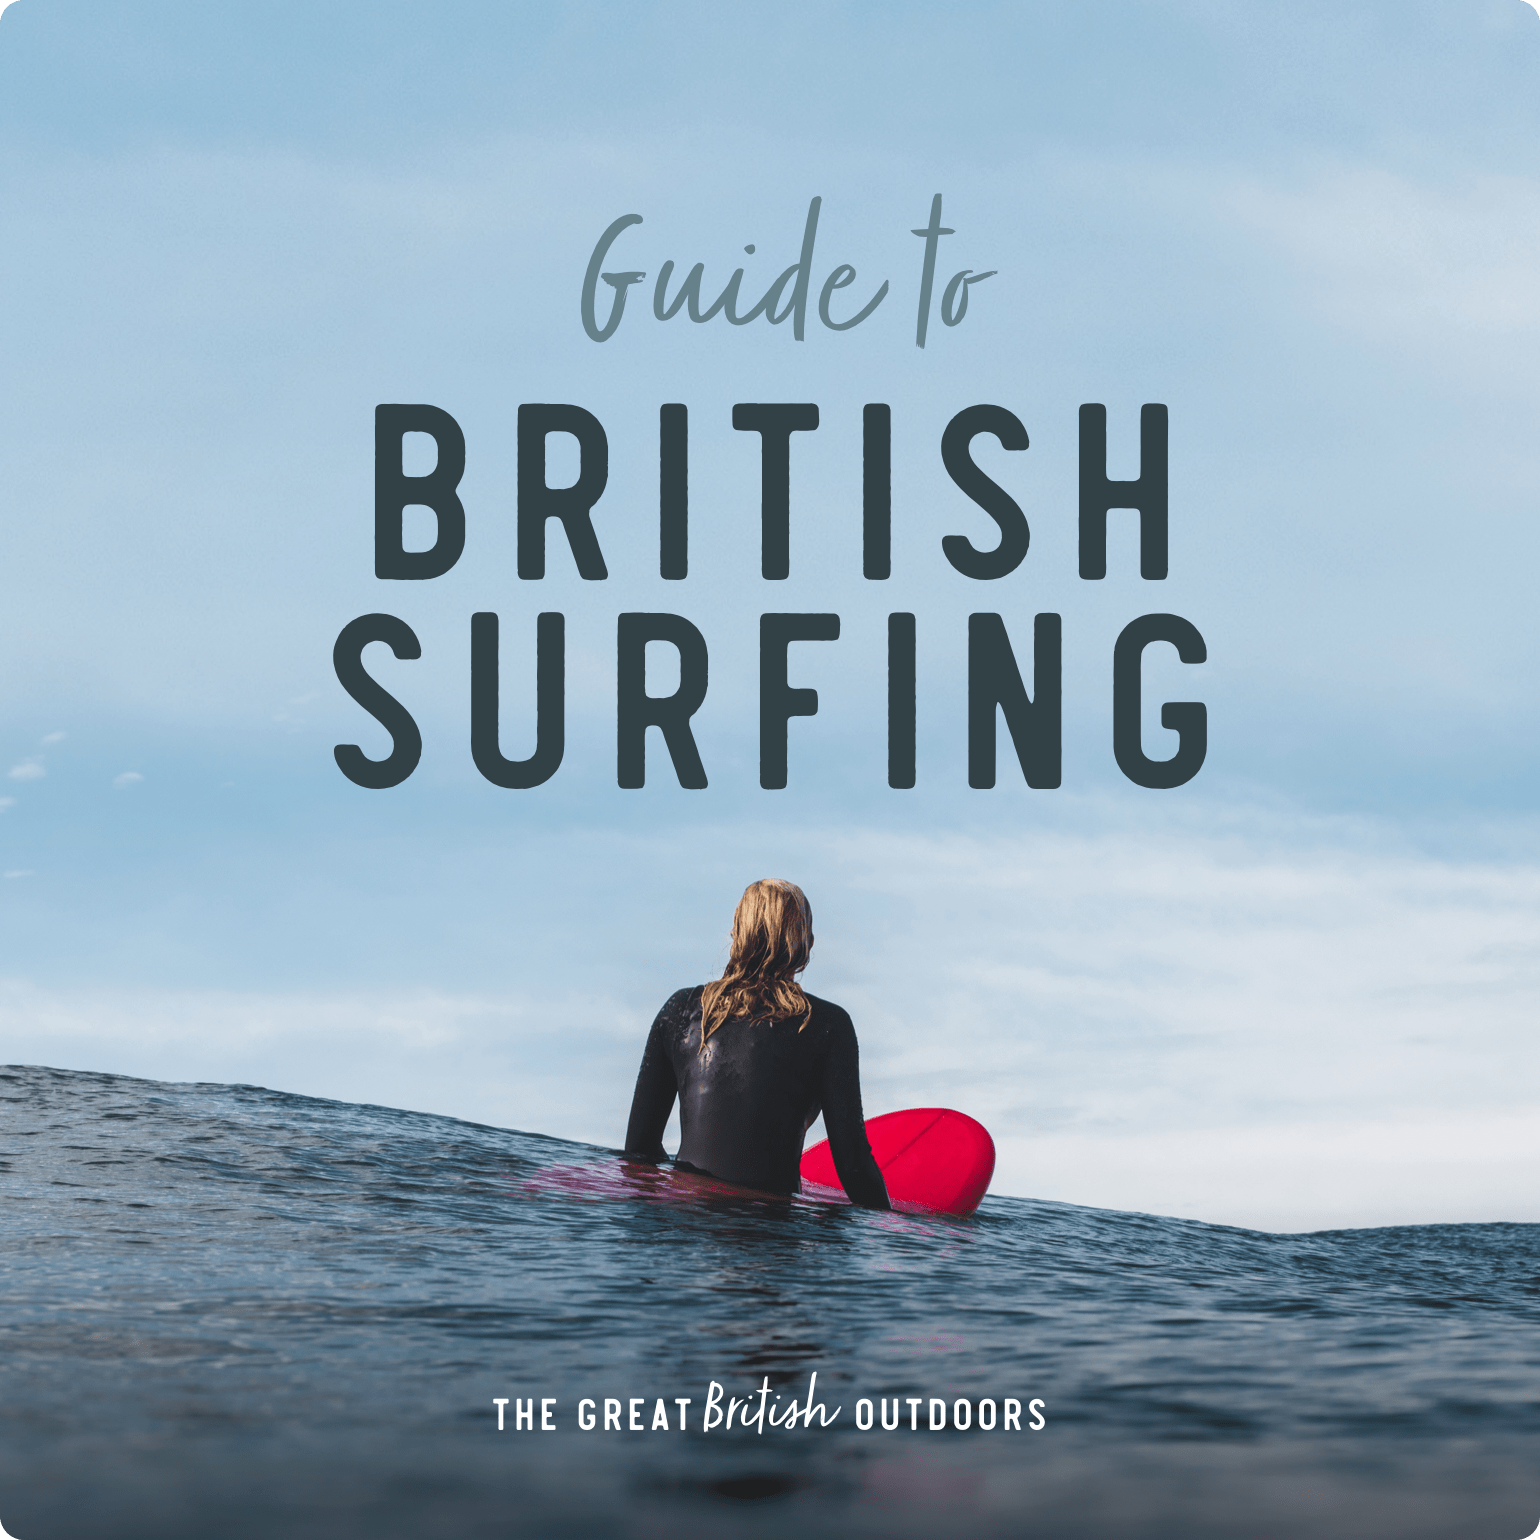 Surfing guide